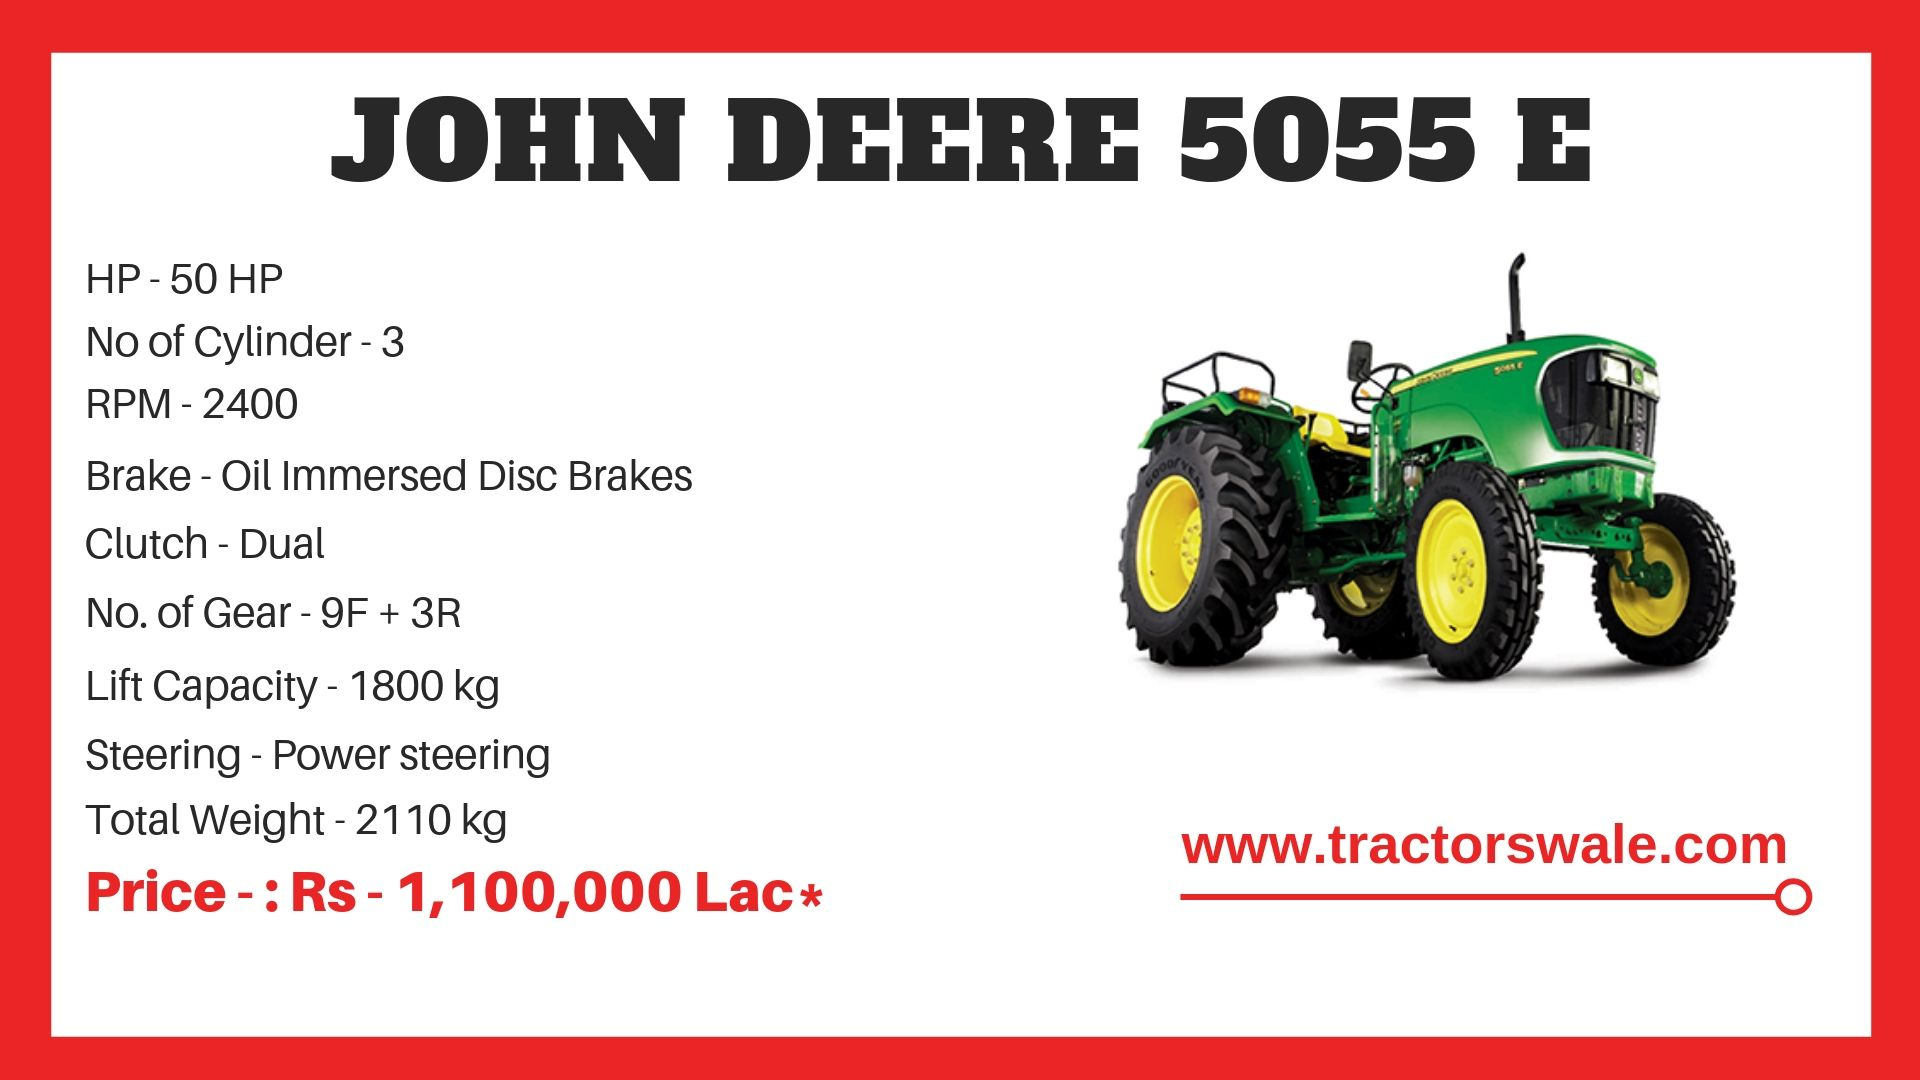 John Deere 5055 E Tractor Specifications